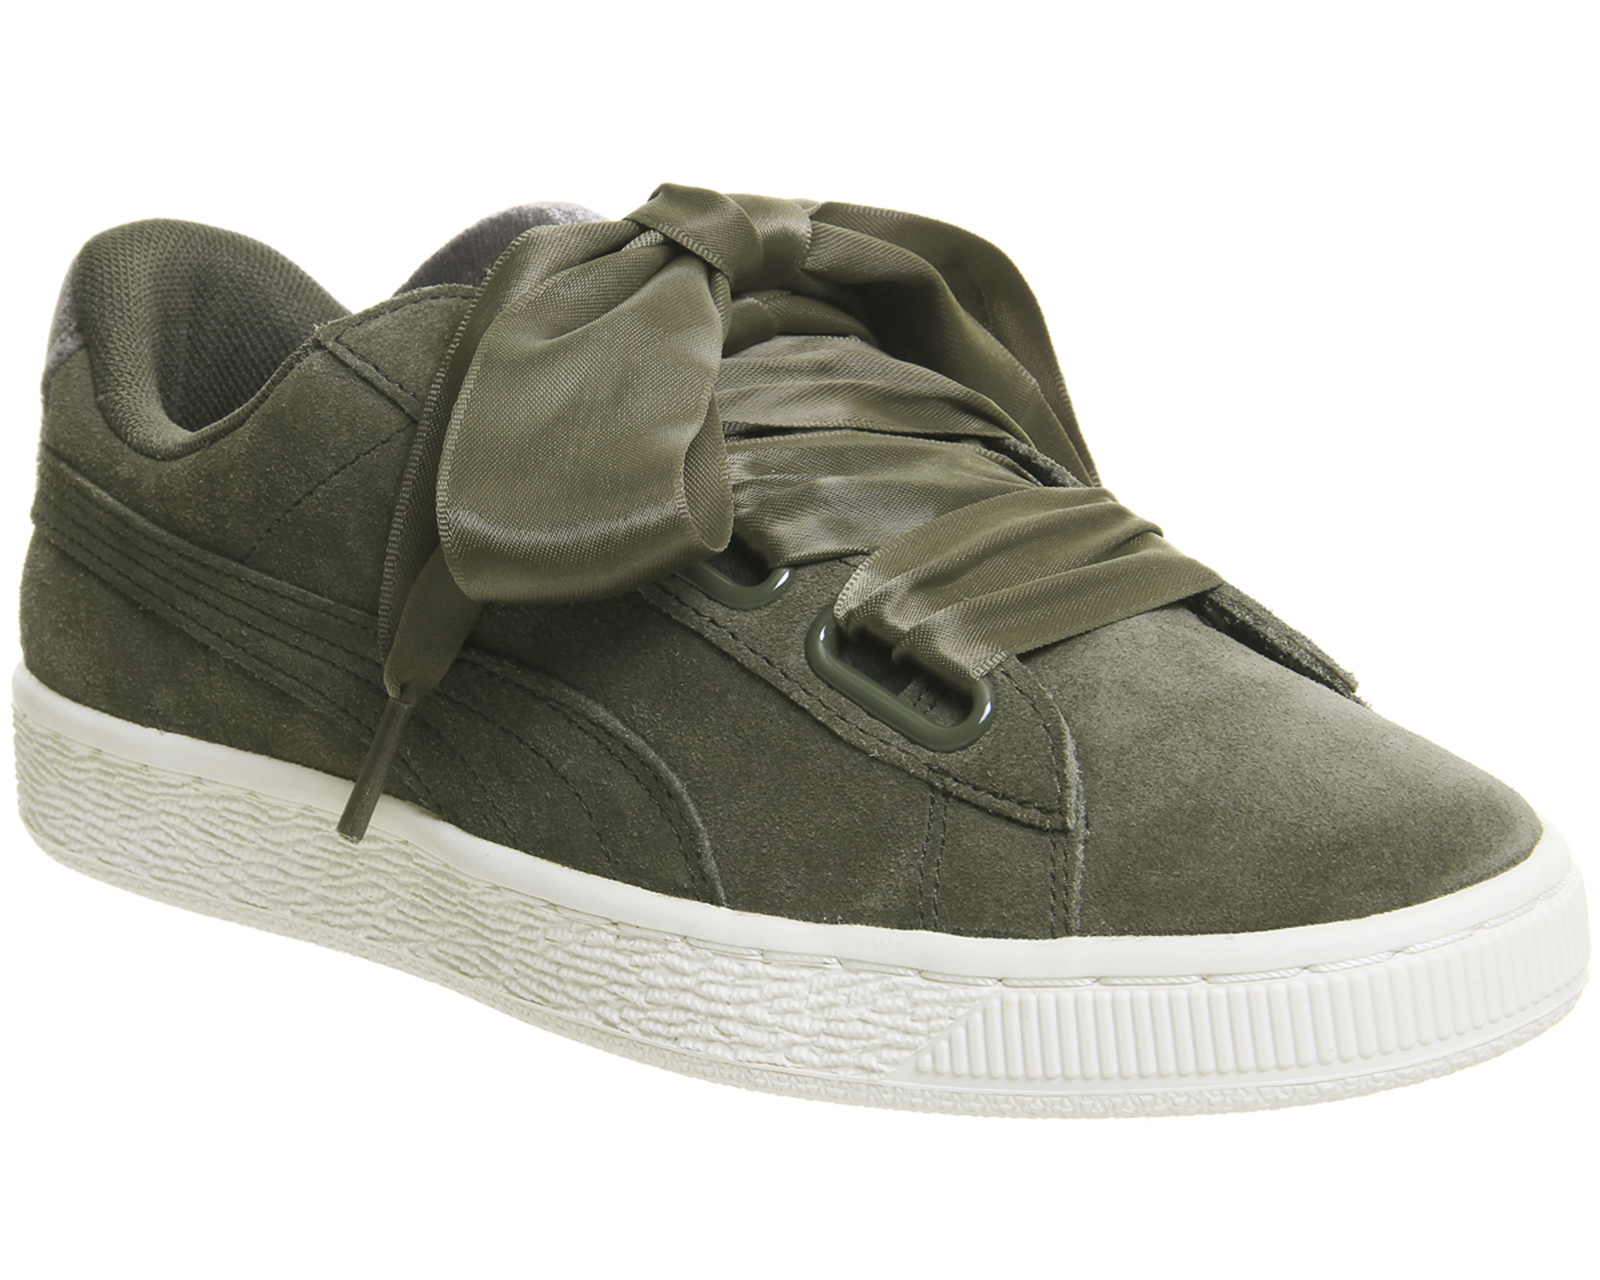 b3c159ae4896 Details about Womens Puma Suede Heart OLIVE NIGHT GOLD VELVET ROPE Trainers  Shoes